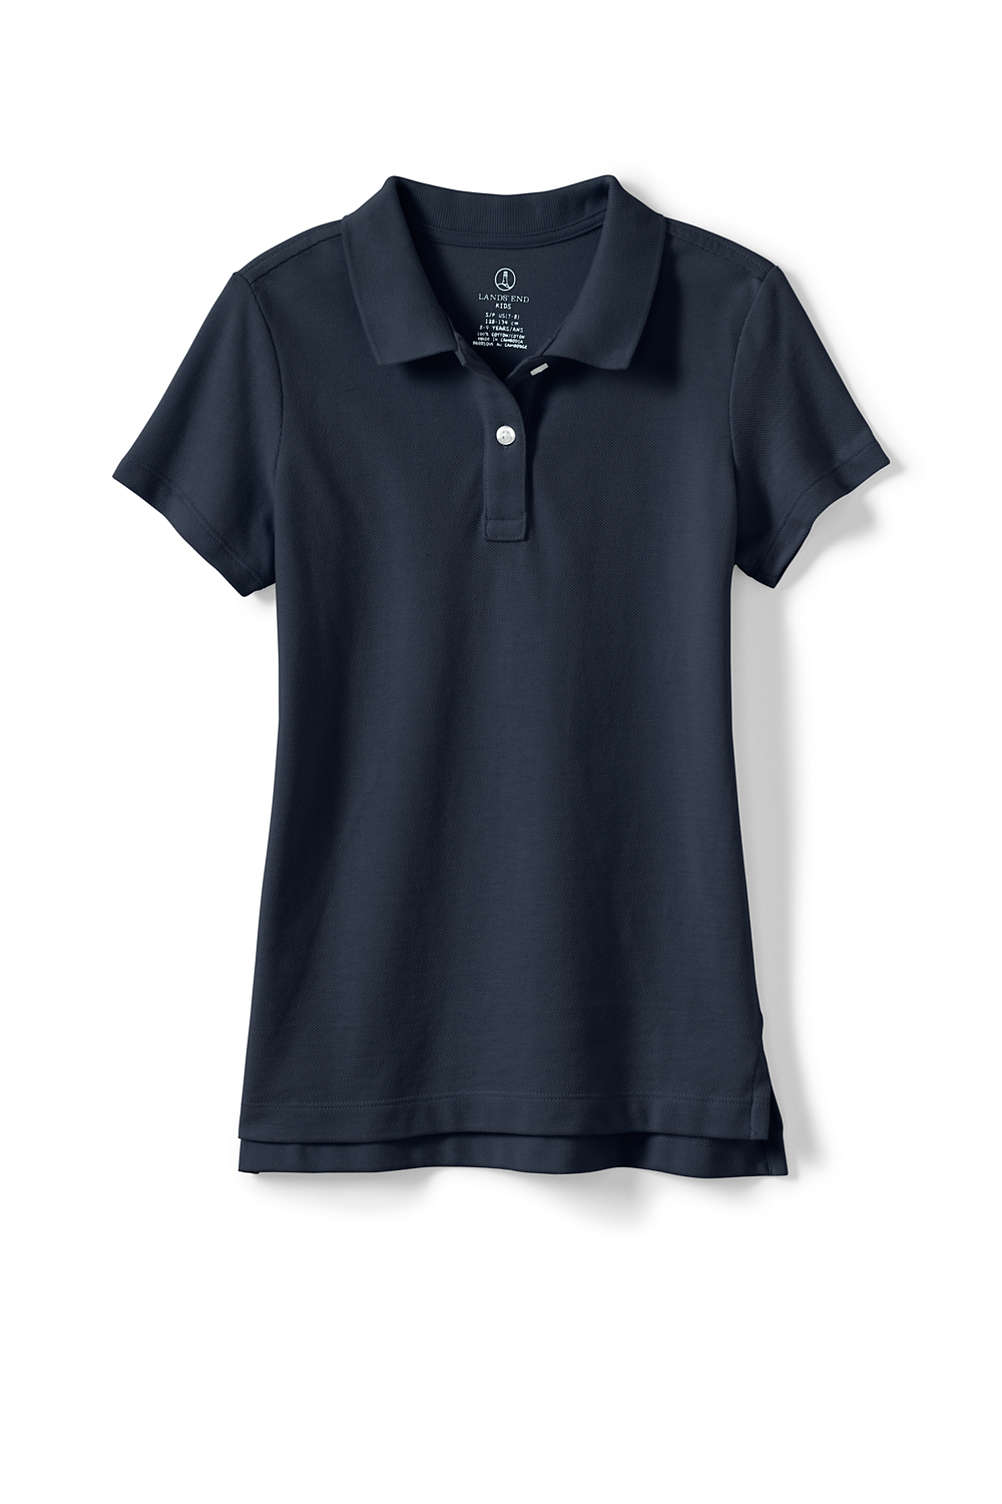 0e456cec4 Girls Fem Fit Short Sleeve Mesh Polo from Lands' End